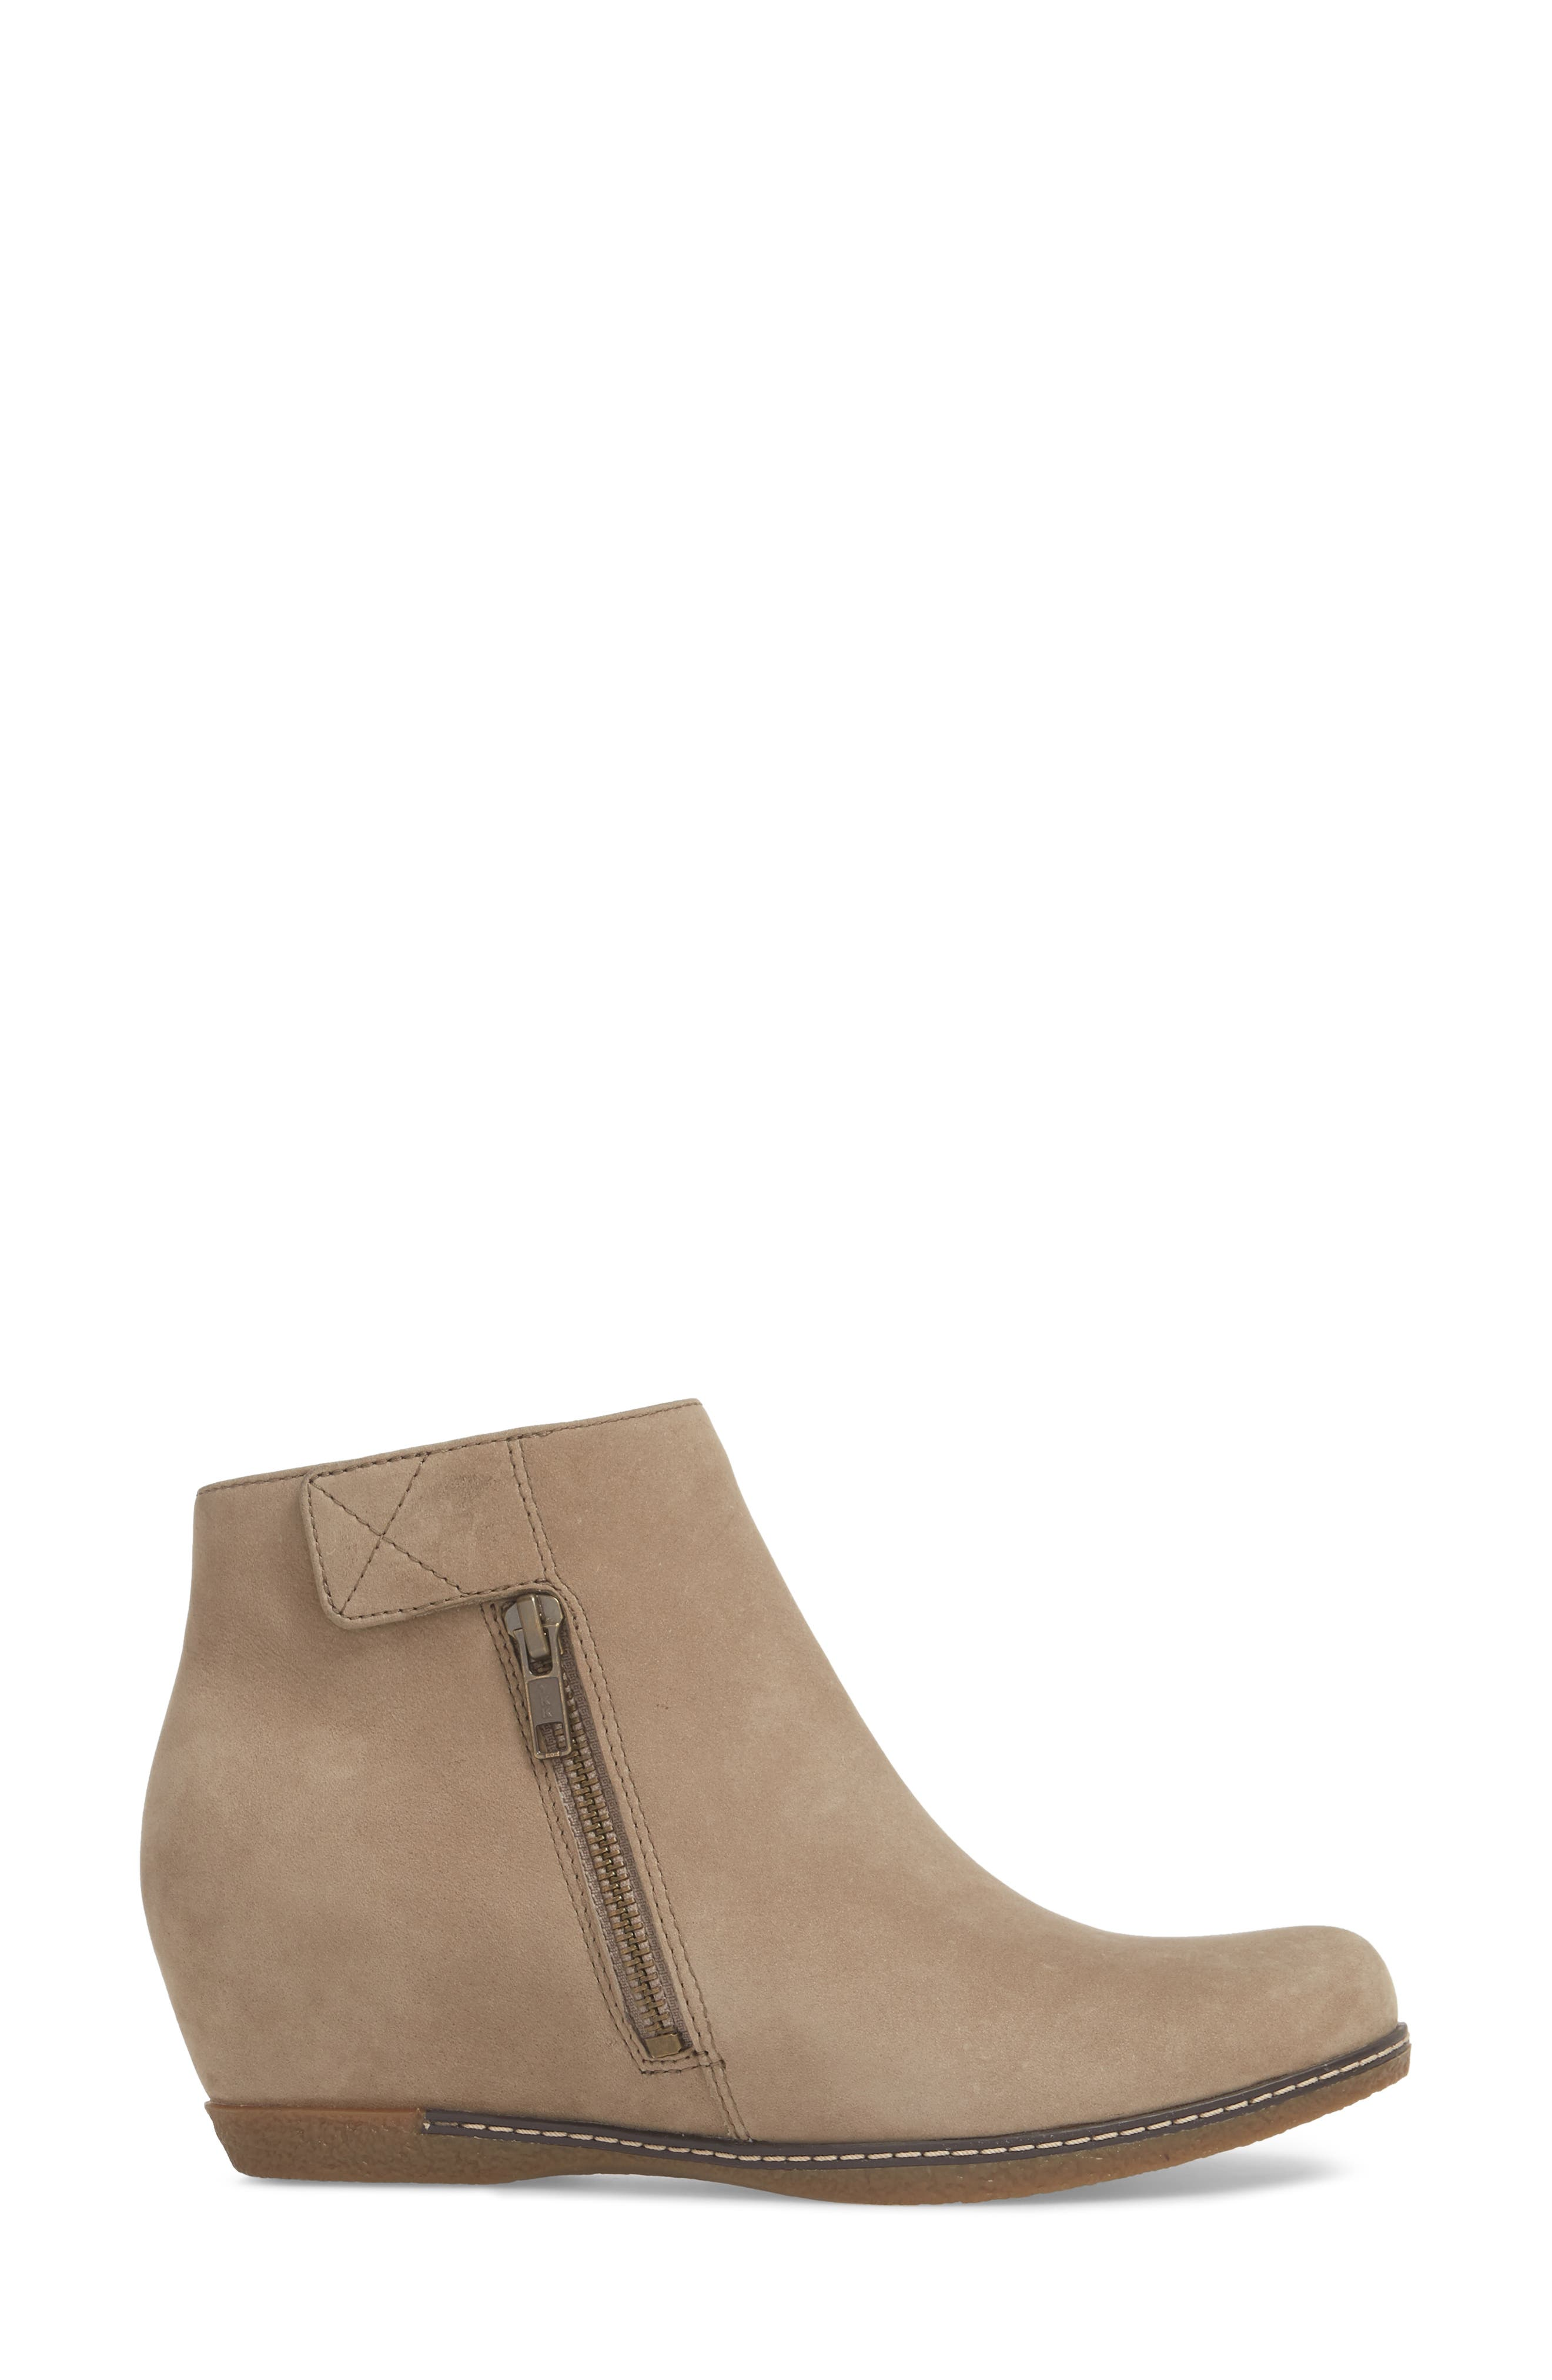 Leanna Bootie,                             Alternate thumbnail 3, color,                             Taupe Burnished Nubuck